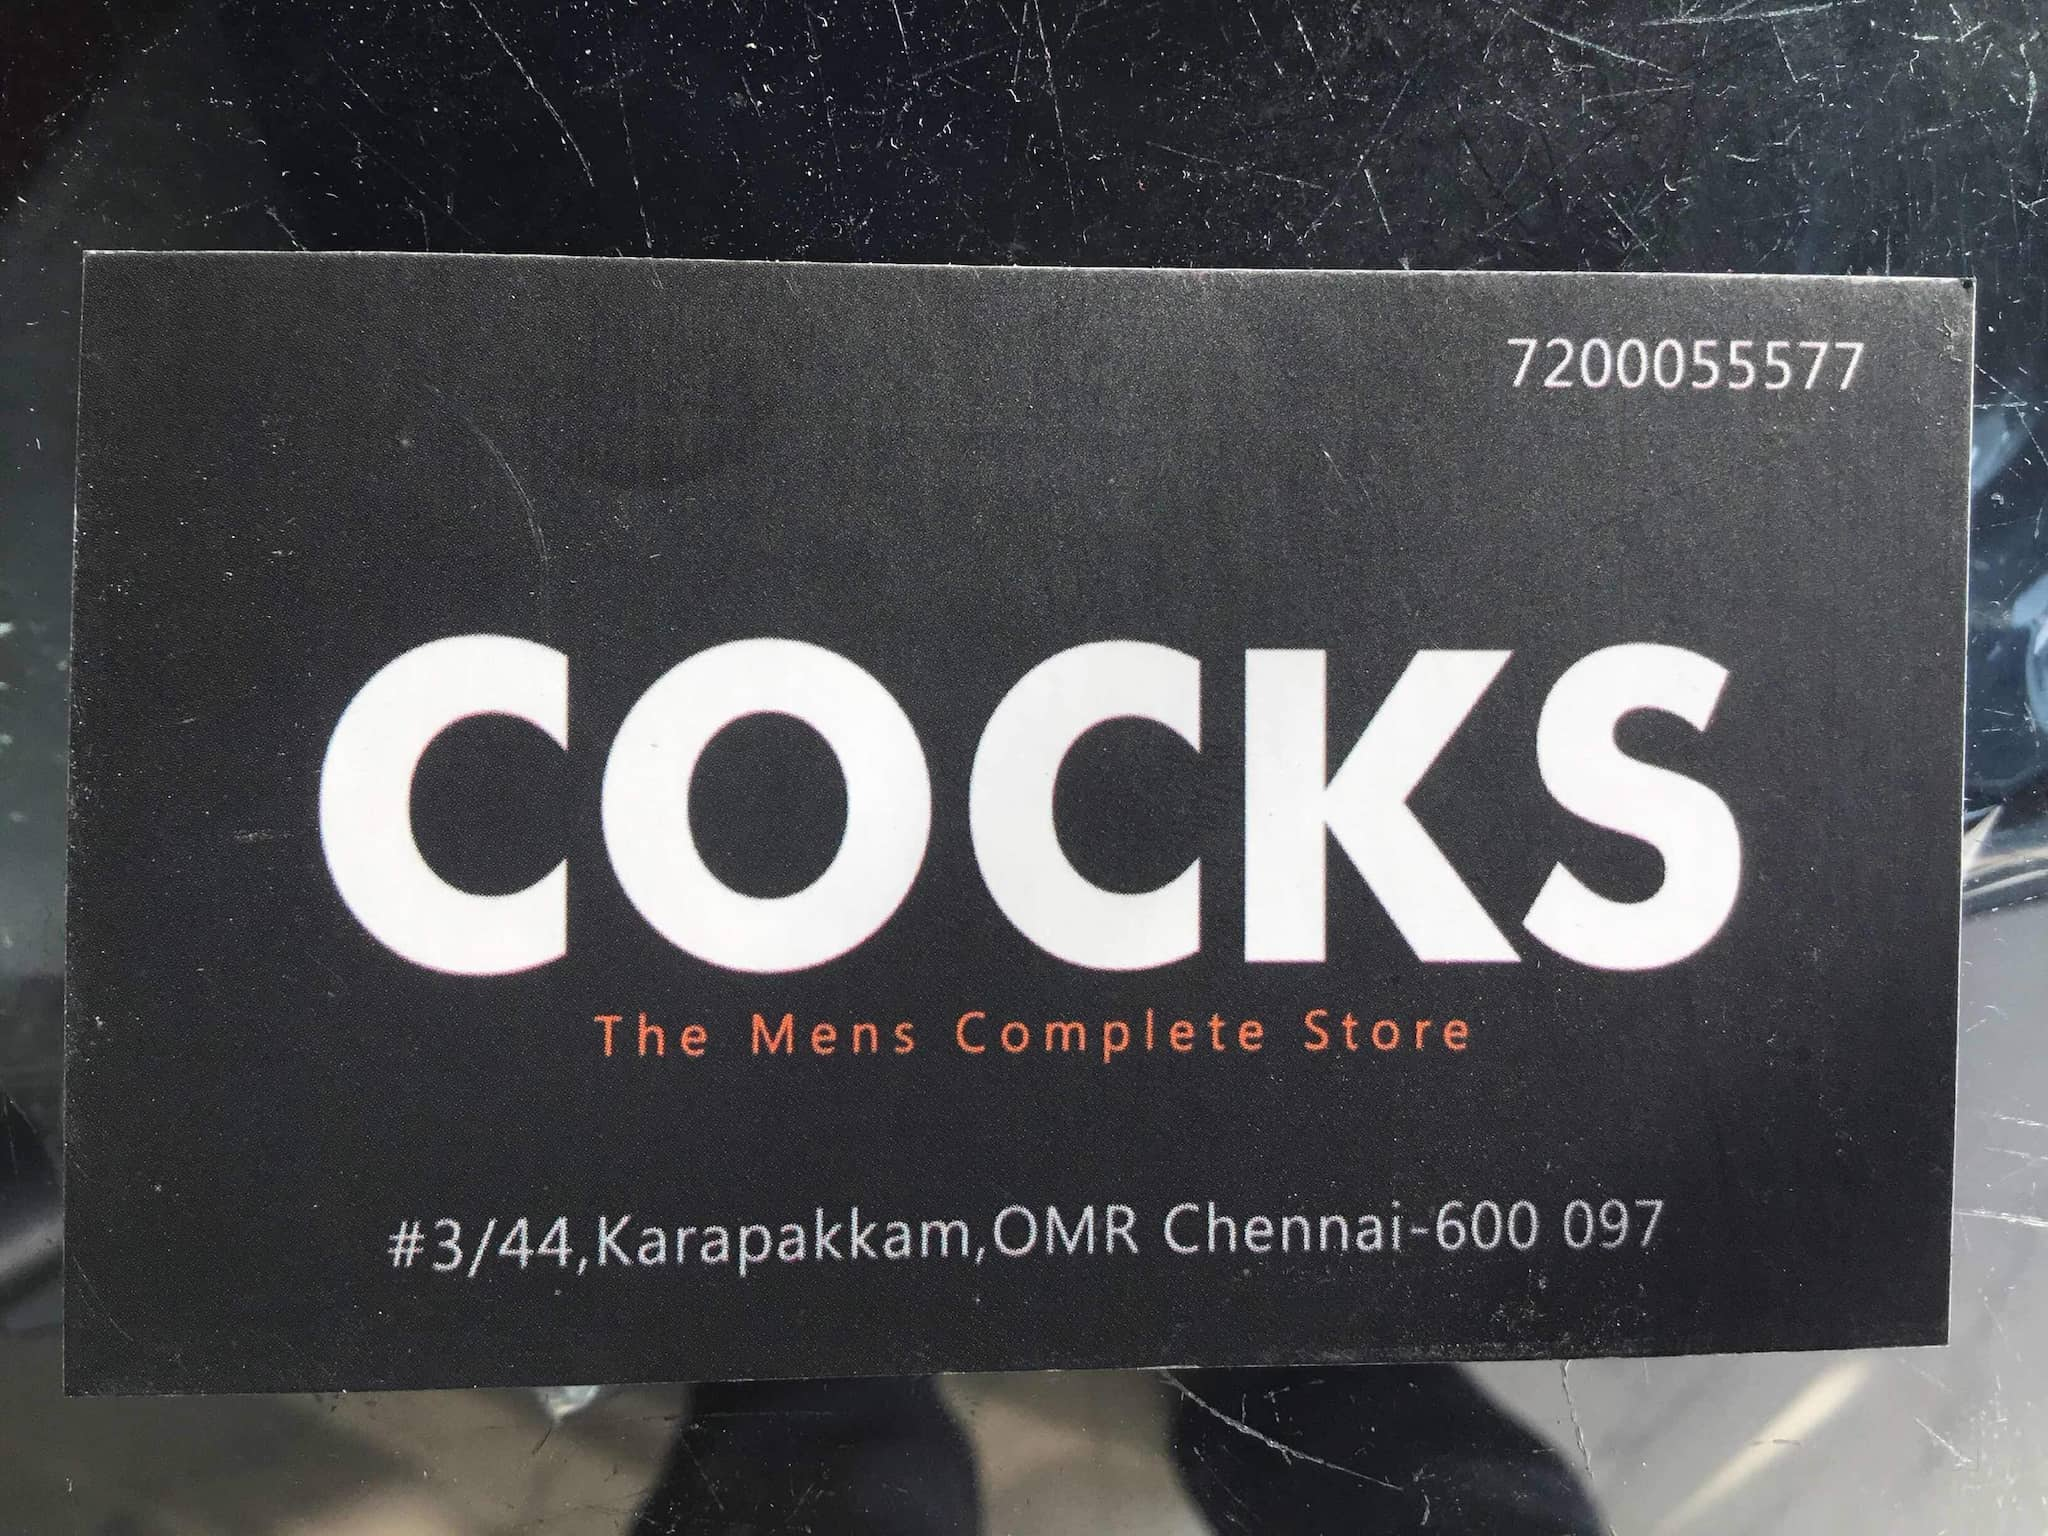 to store cocks